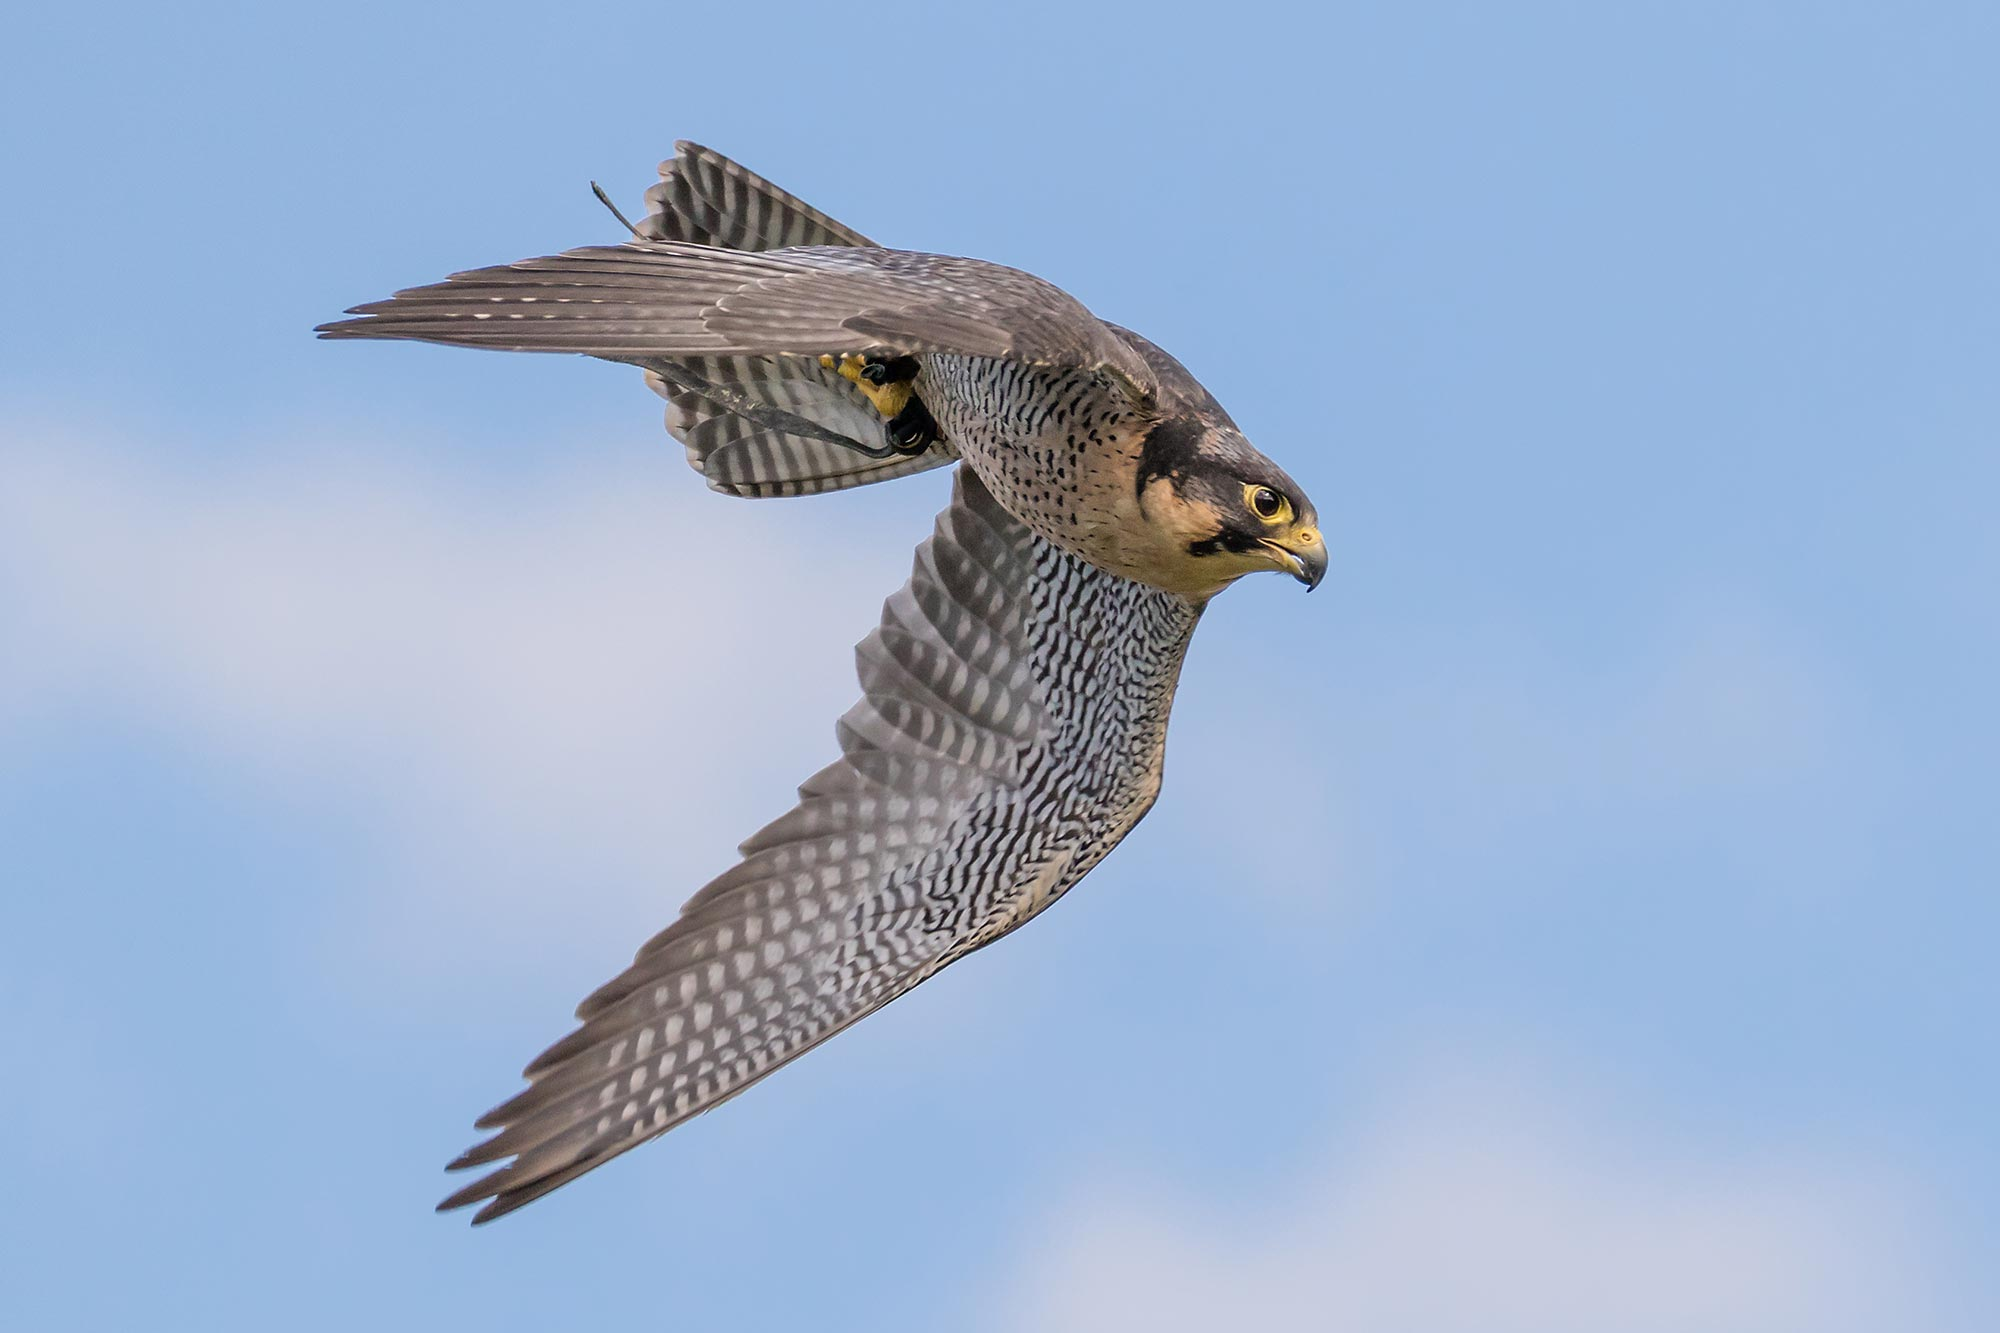 Falcons See Prey At Over 200 Mph Speed Of A Formula 1 Race Car